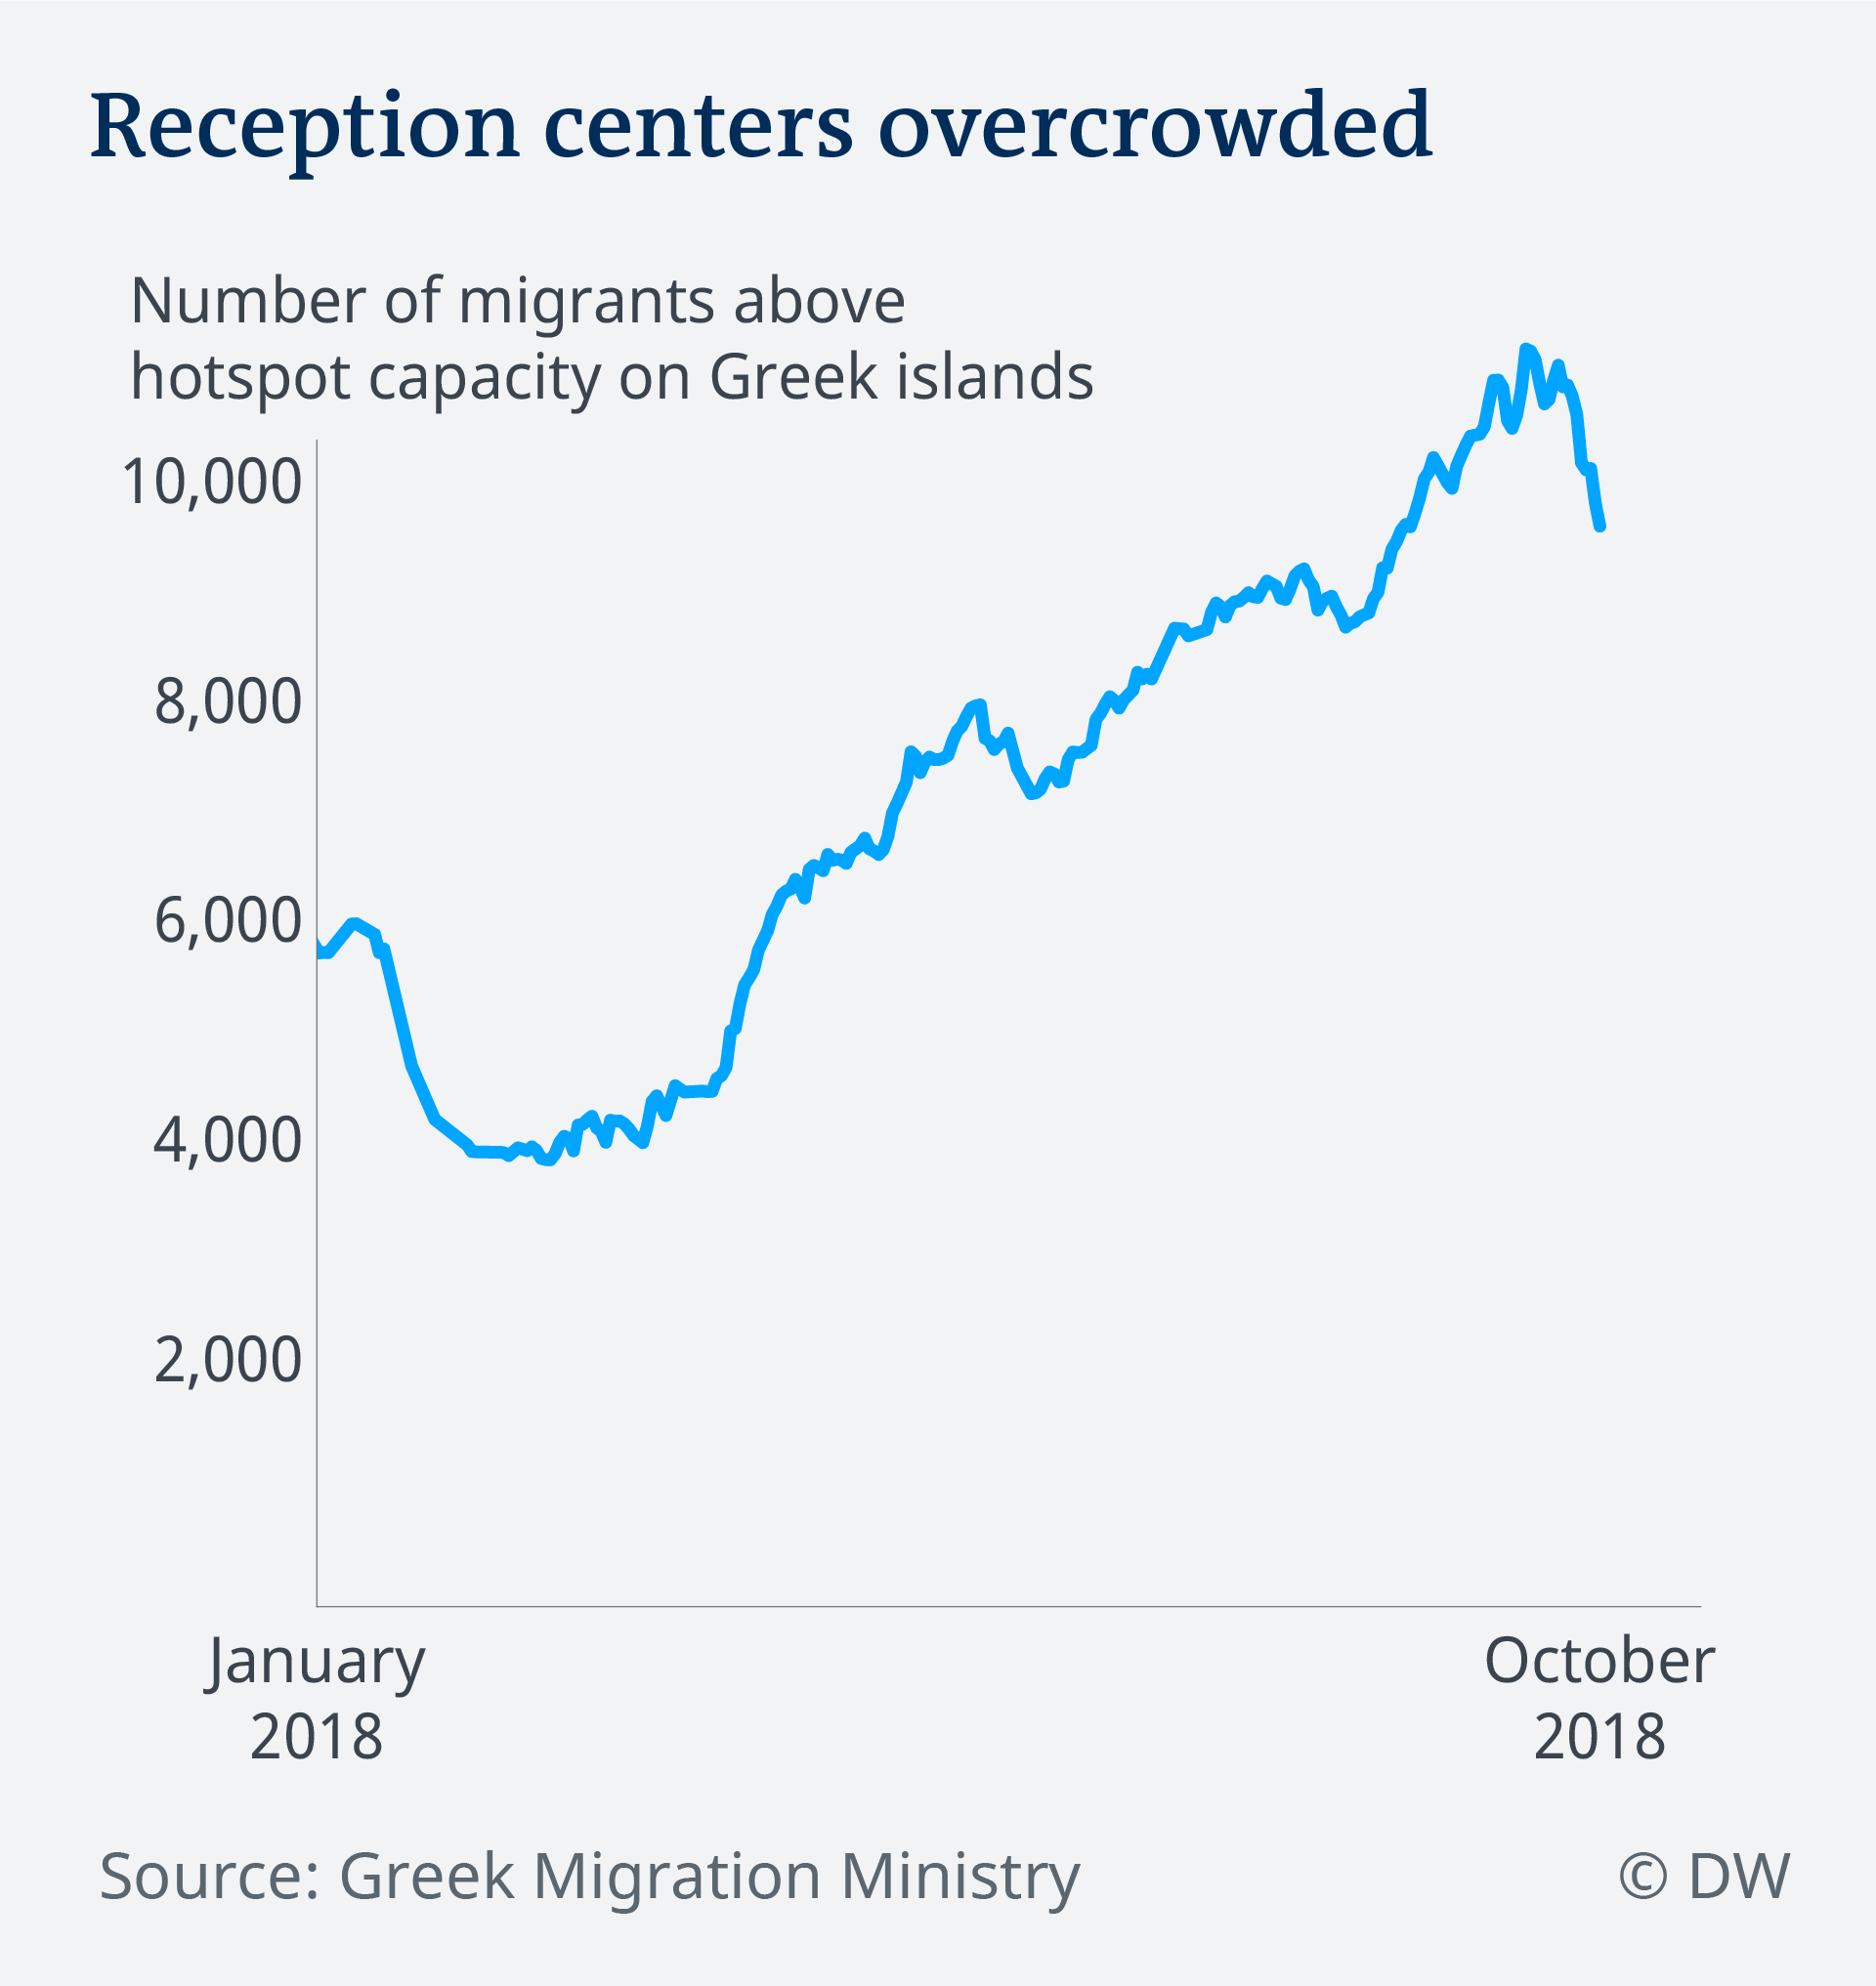 Data visualization EN Greek islands refugee camps overcrowded